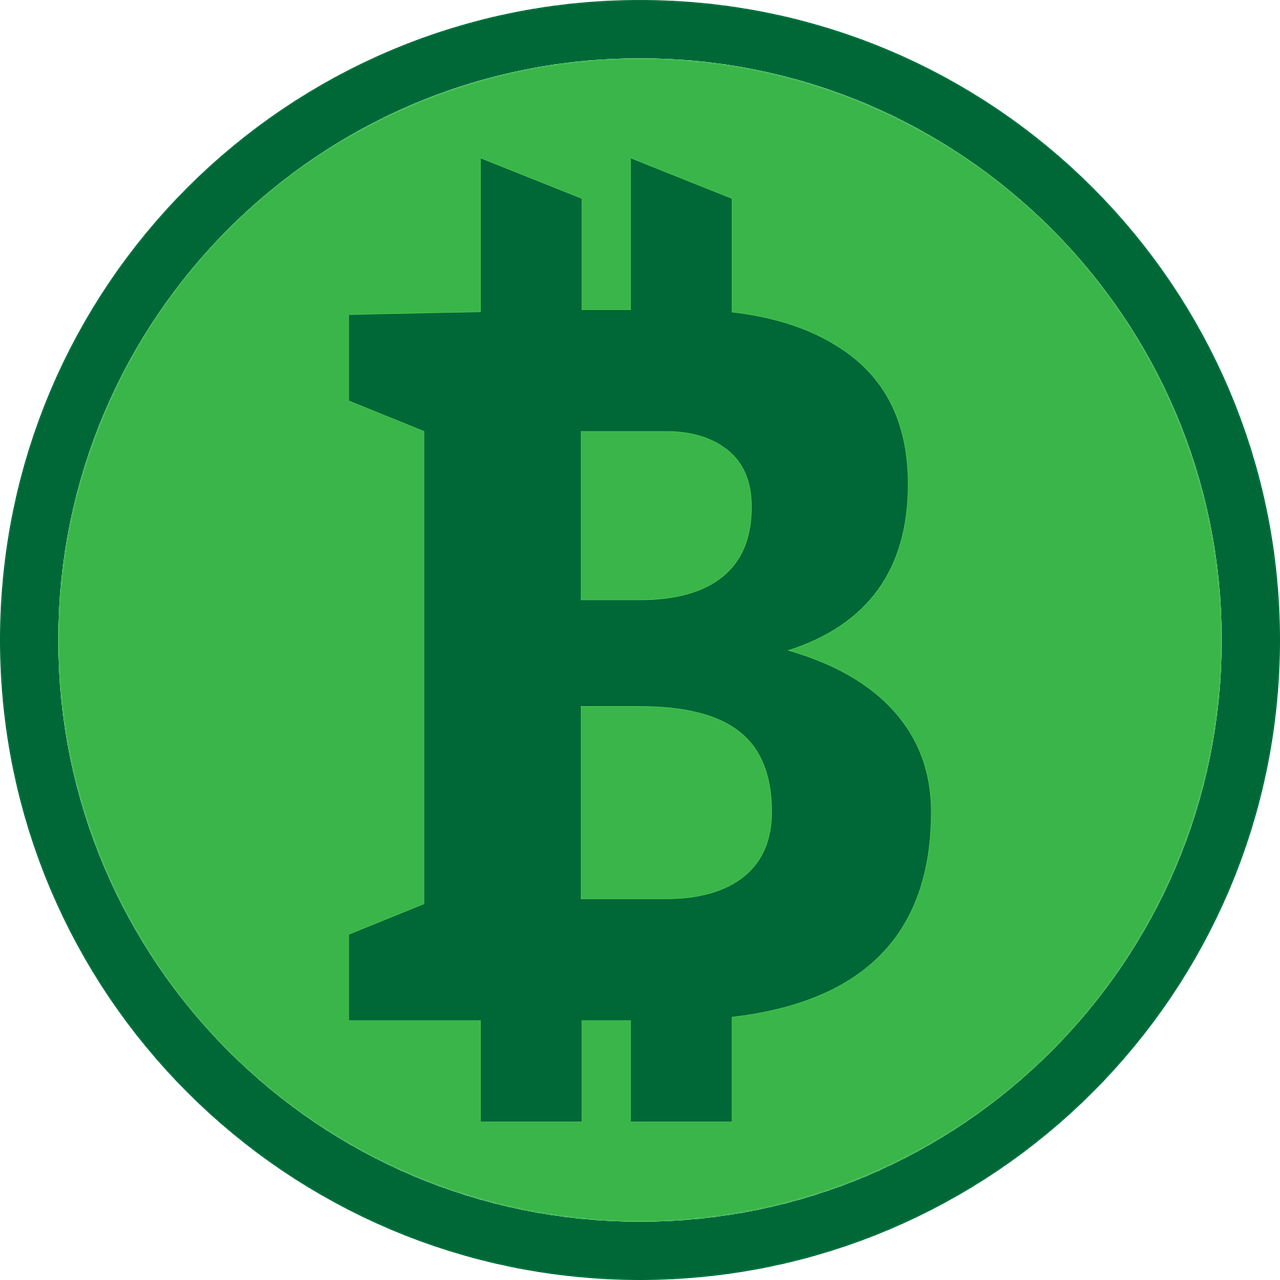 Bitcoin Wallpapers In 2020 Bitcoin Bitcoin Business How To Get Money